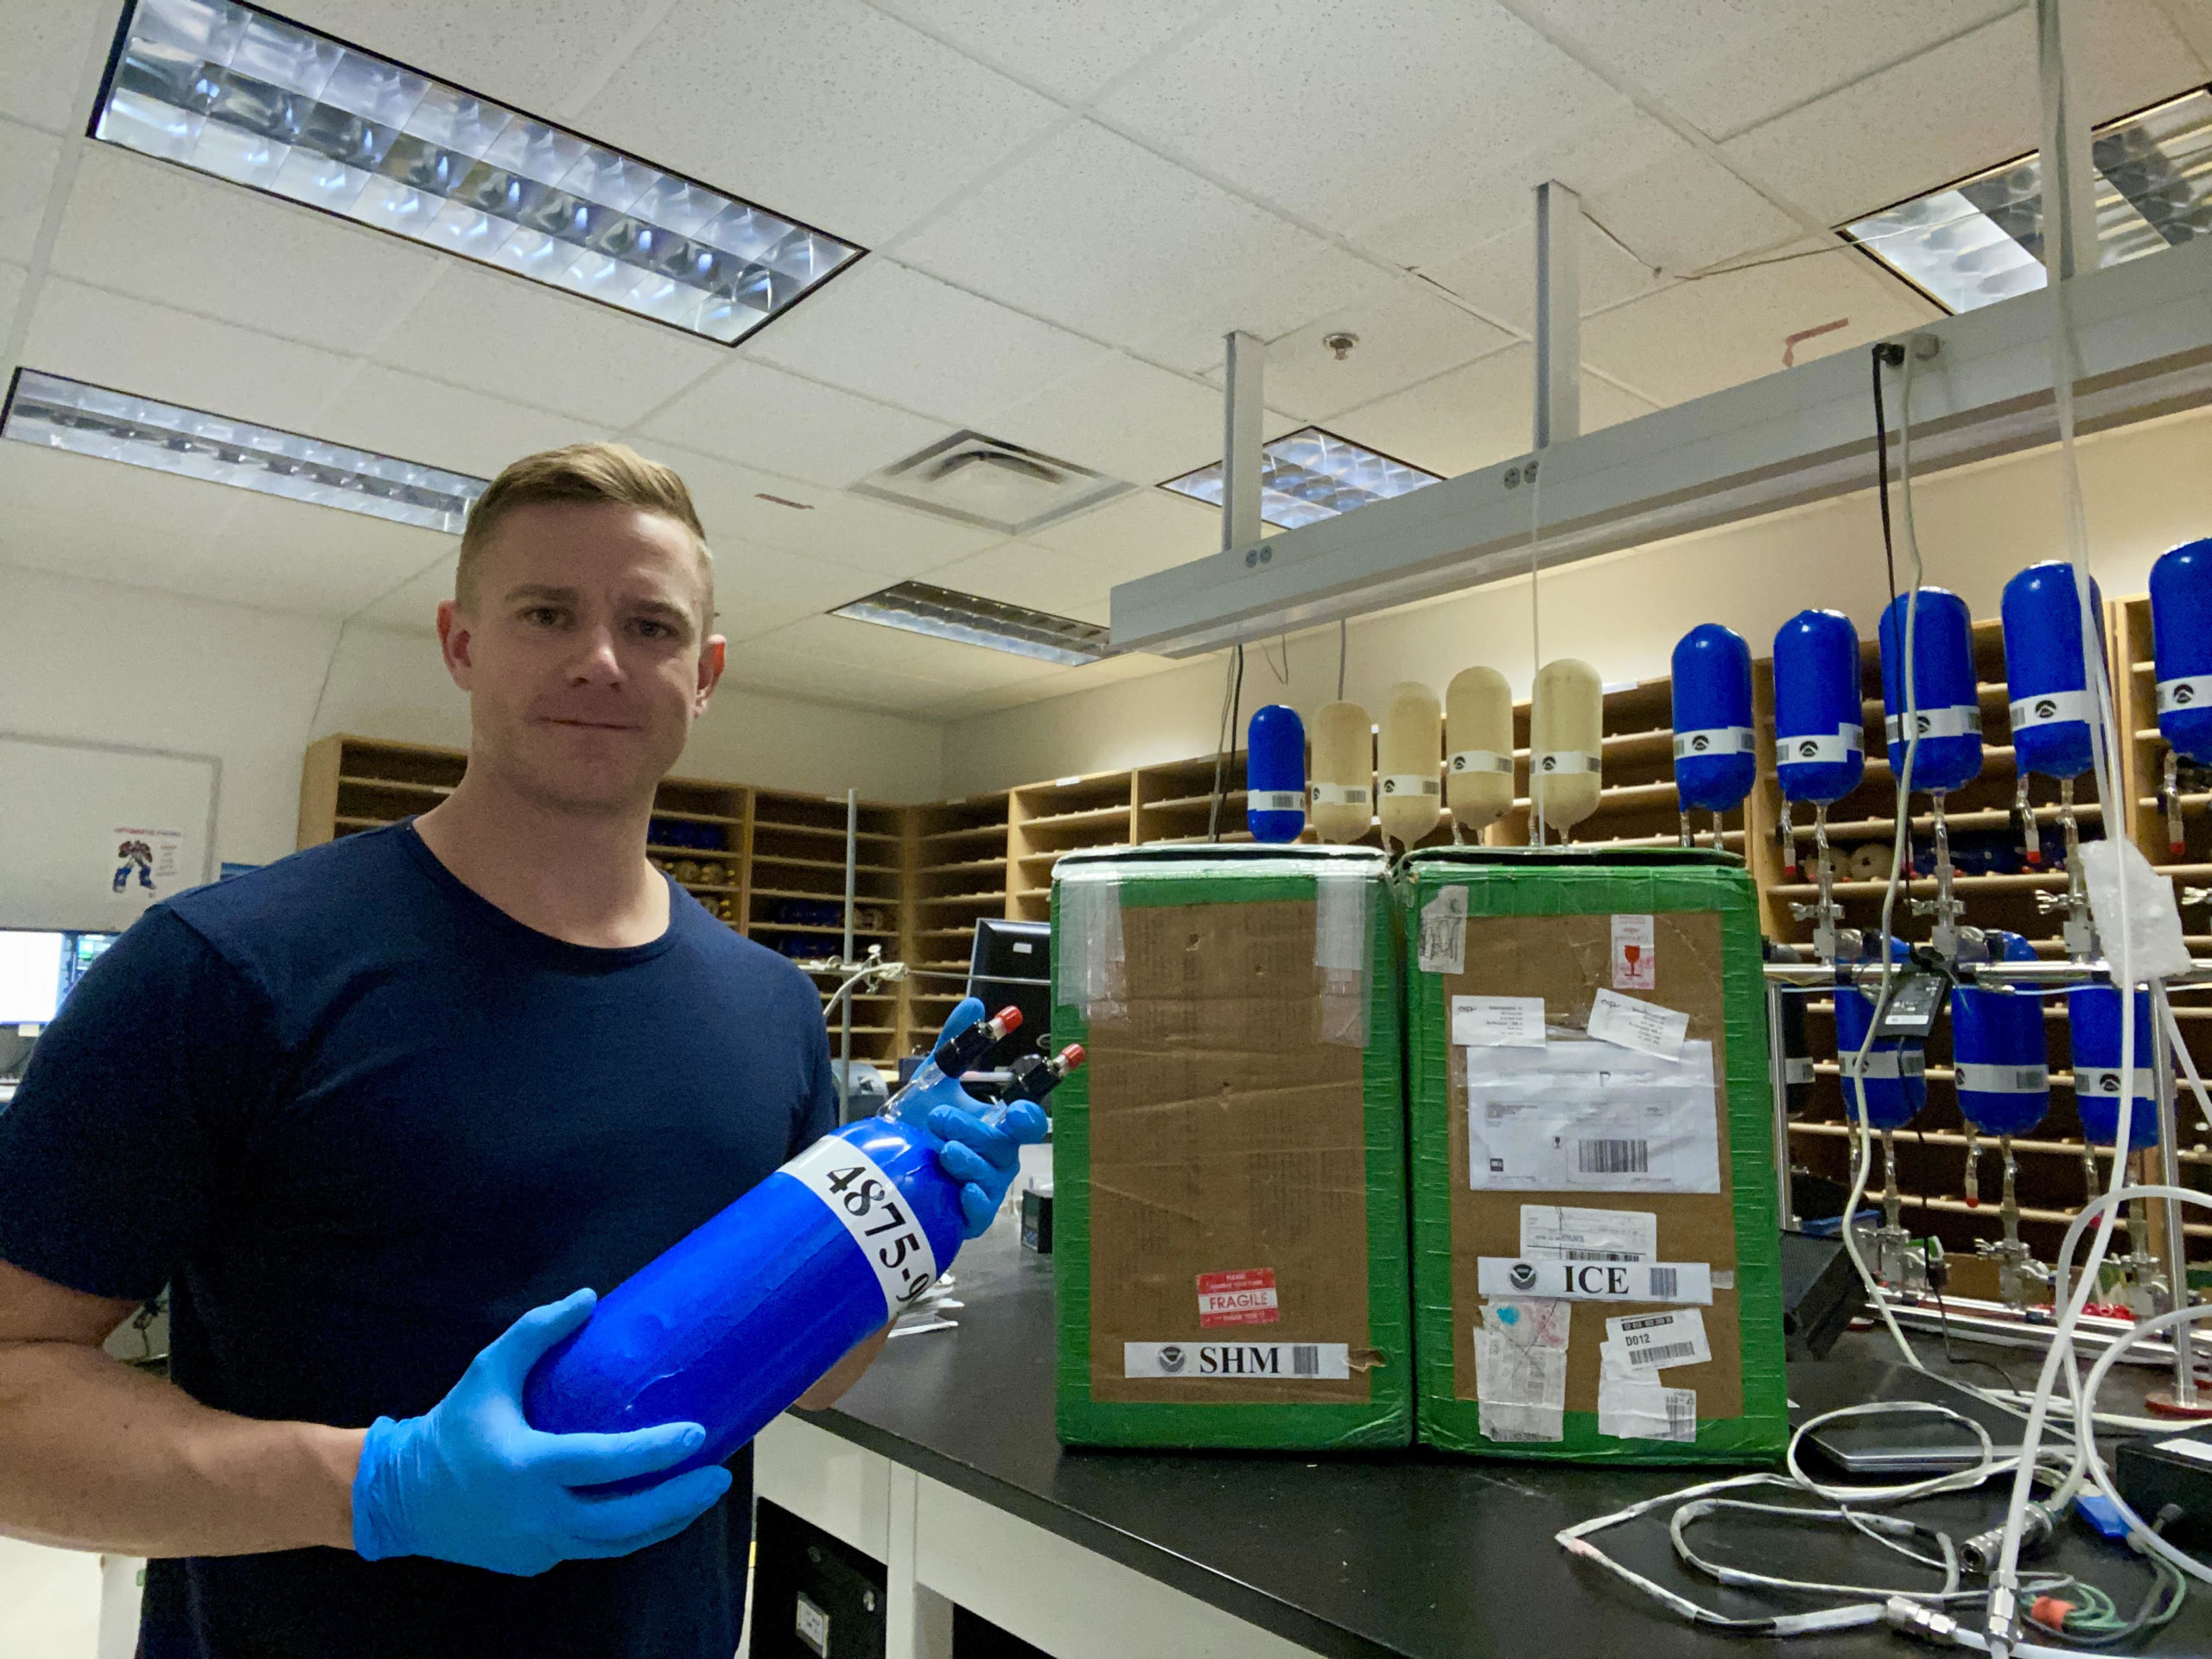 Associate Research Scientist Eric Moglia inside the Flask Logistics Lab at the National Oceanic and Atmospheric Administration in Boulder.